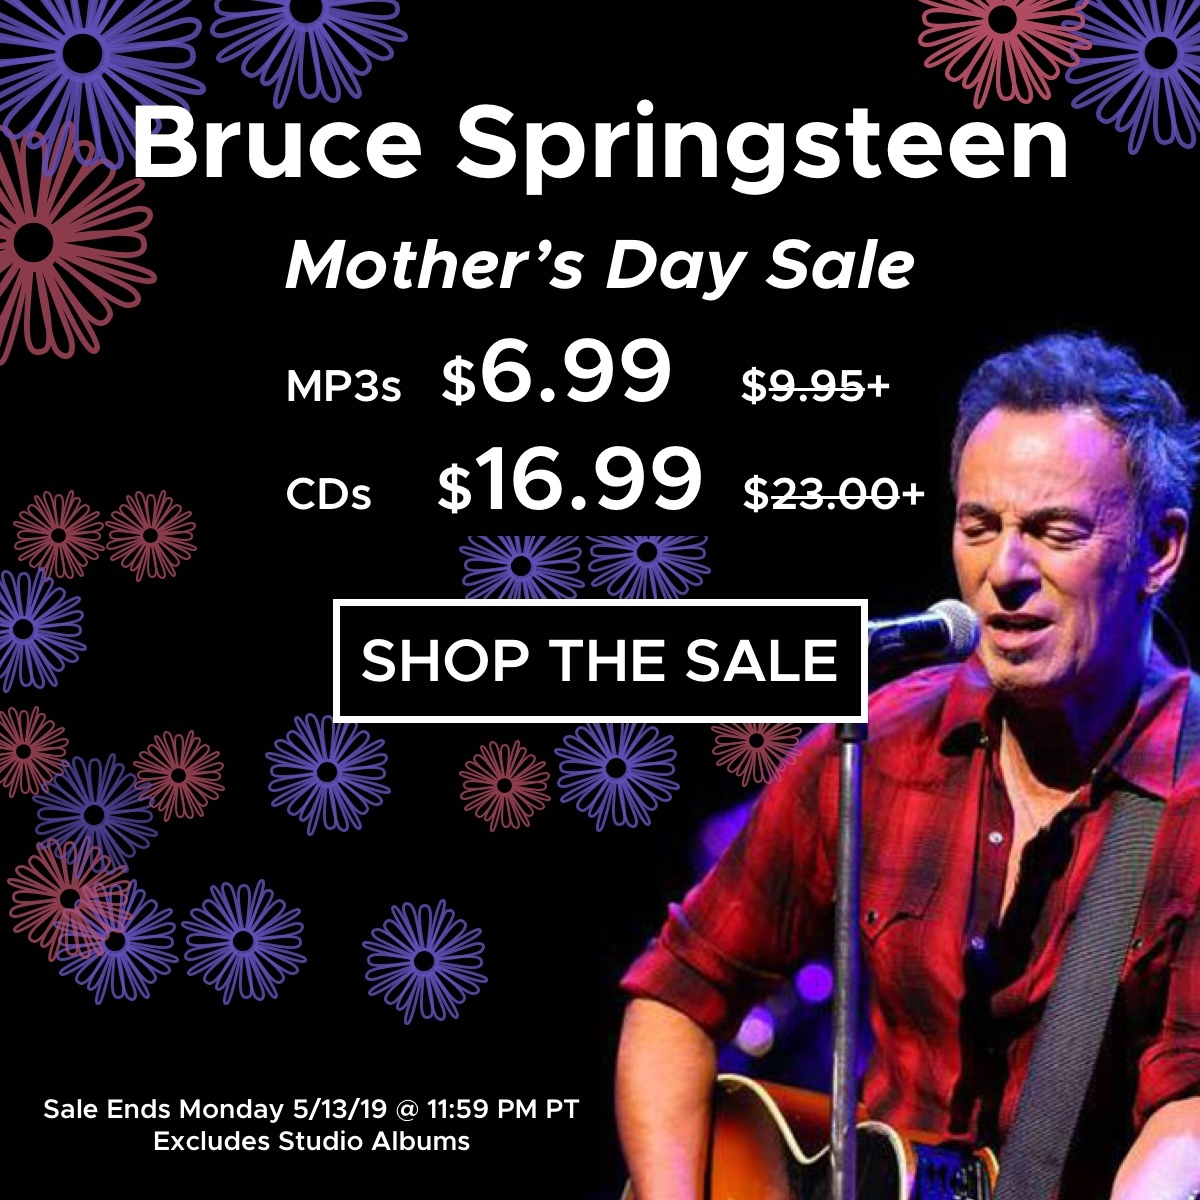 Huge sale on live Bruce Springsteen shows, CDs only $16.99 and MP3s only $6.99. Limited time deal, sale ends Monday.